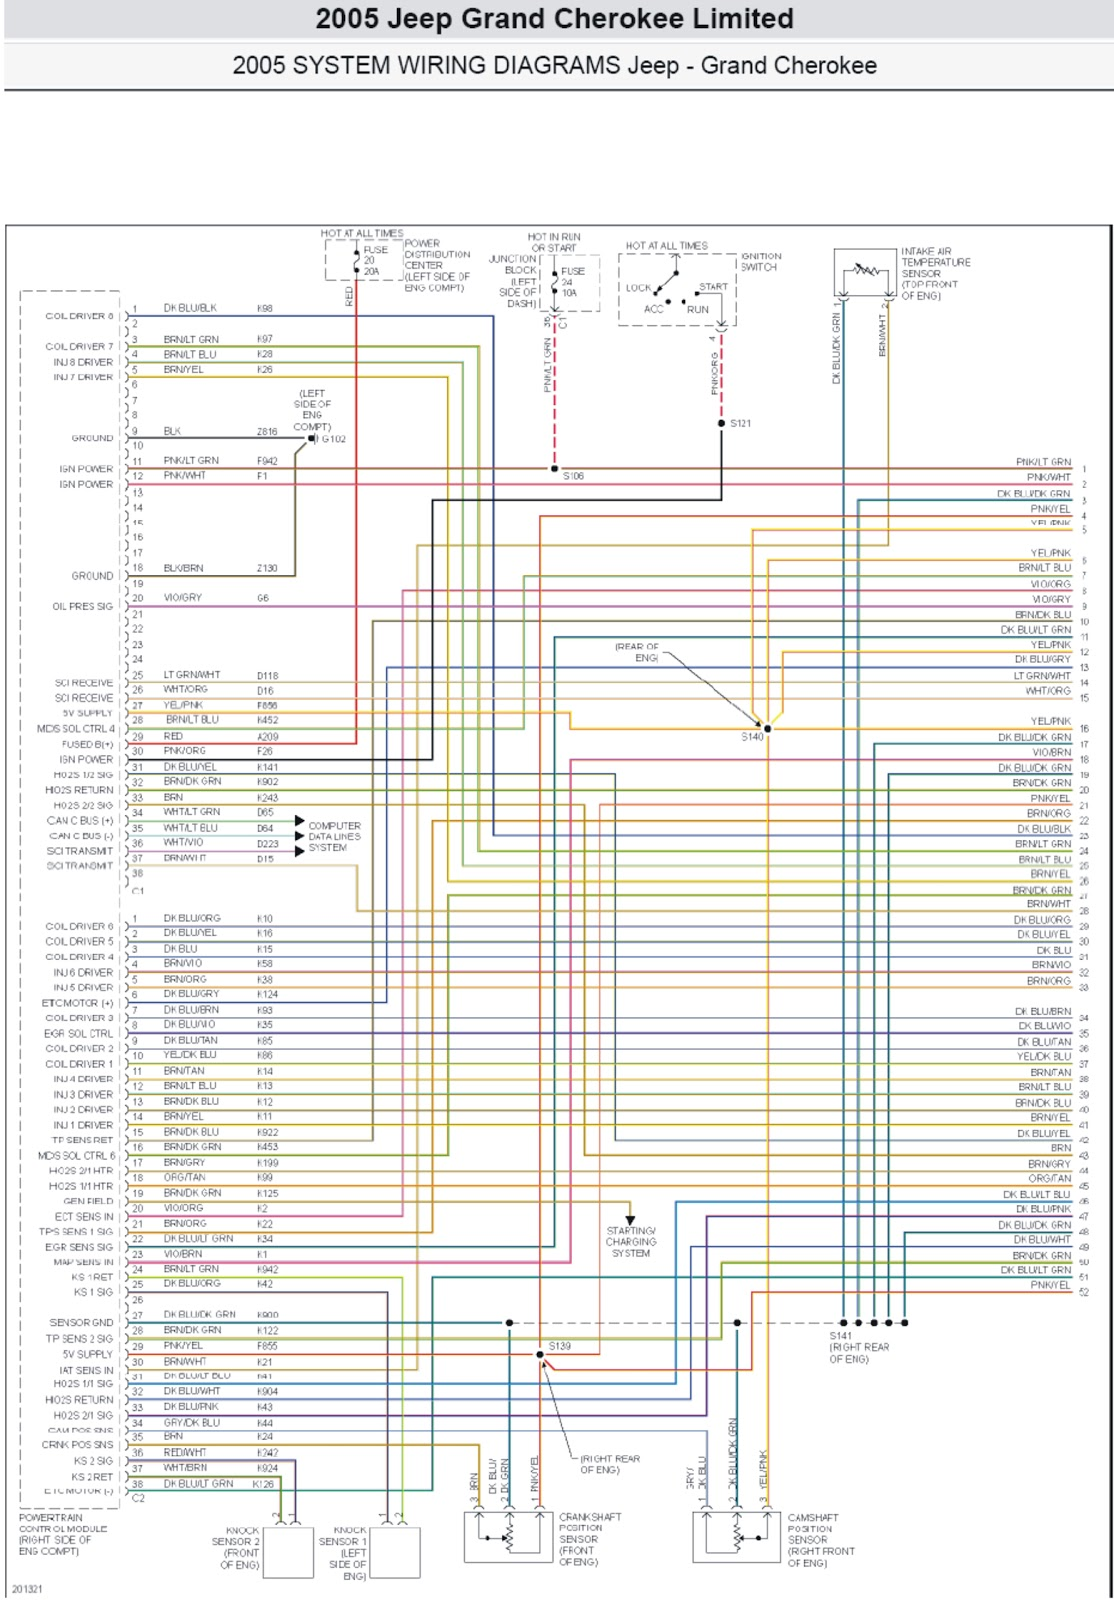 jeep grand cherokee wiring harness problems wiring diagrams wni jeep grand cherokee wiring everything wiring diagram [ 1114 x 1600 Pixel ]